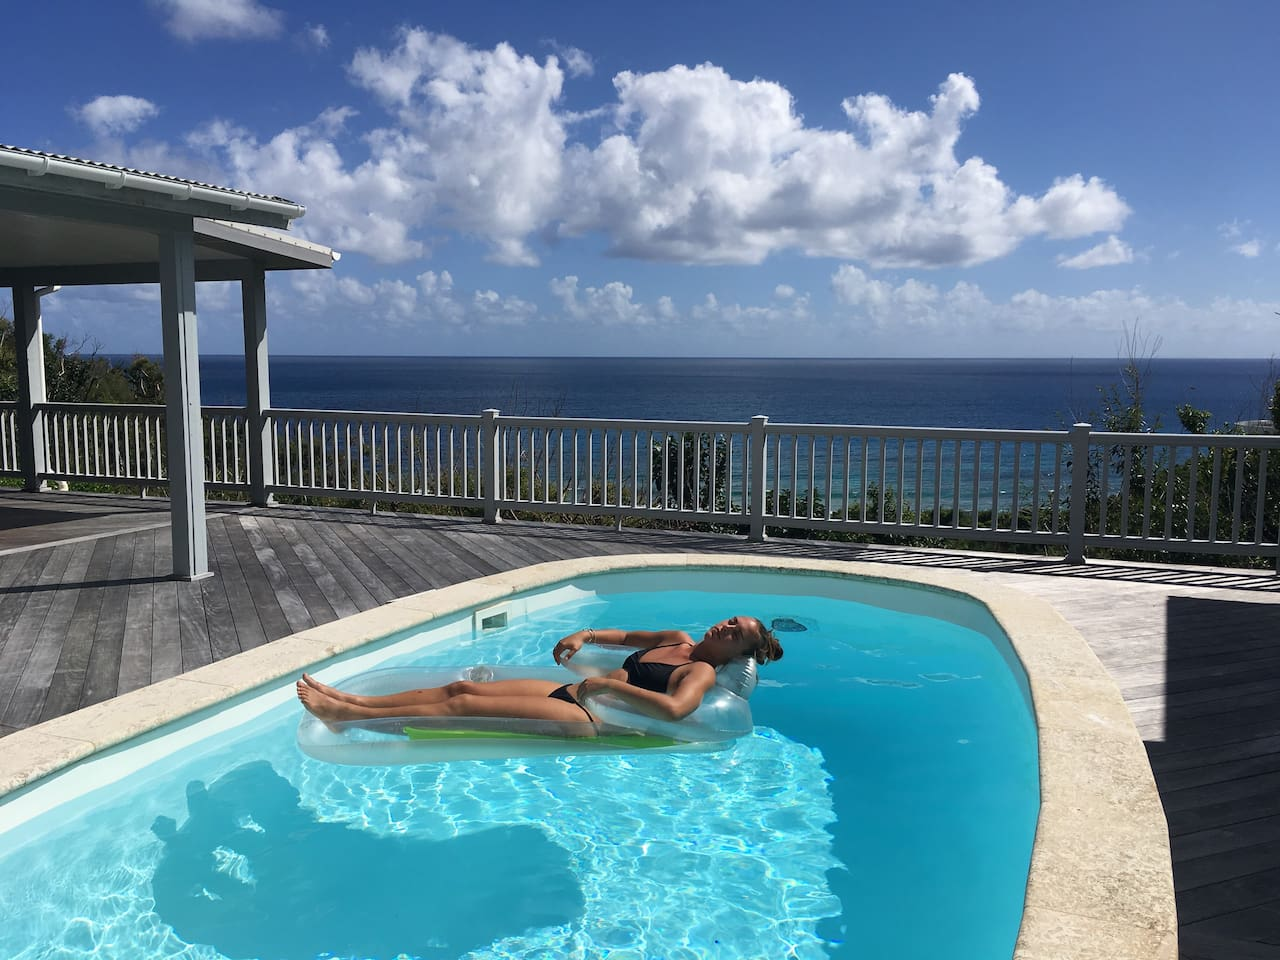 Relax in your room with a view, in the pool or the spa!